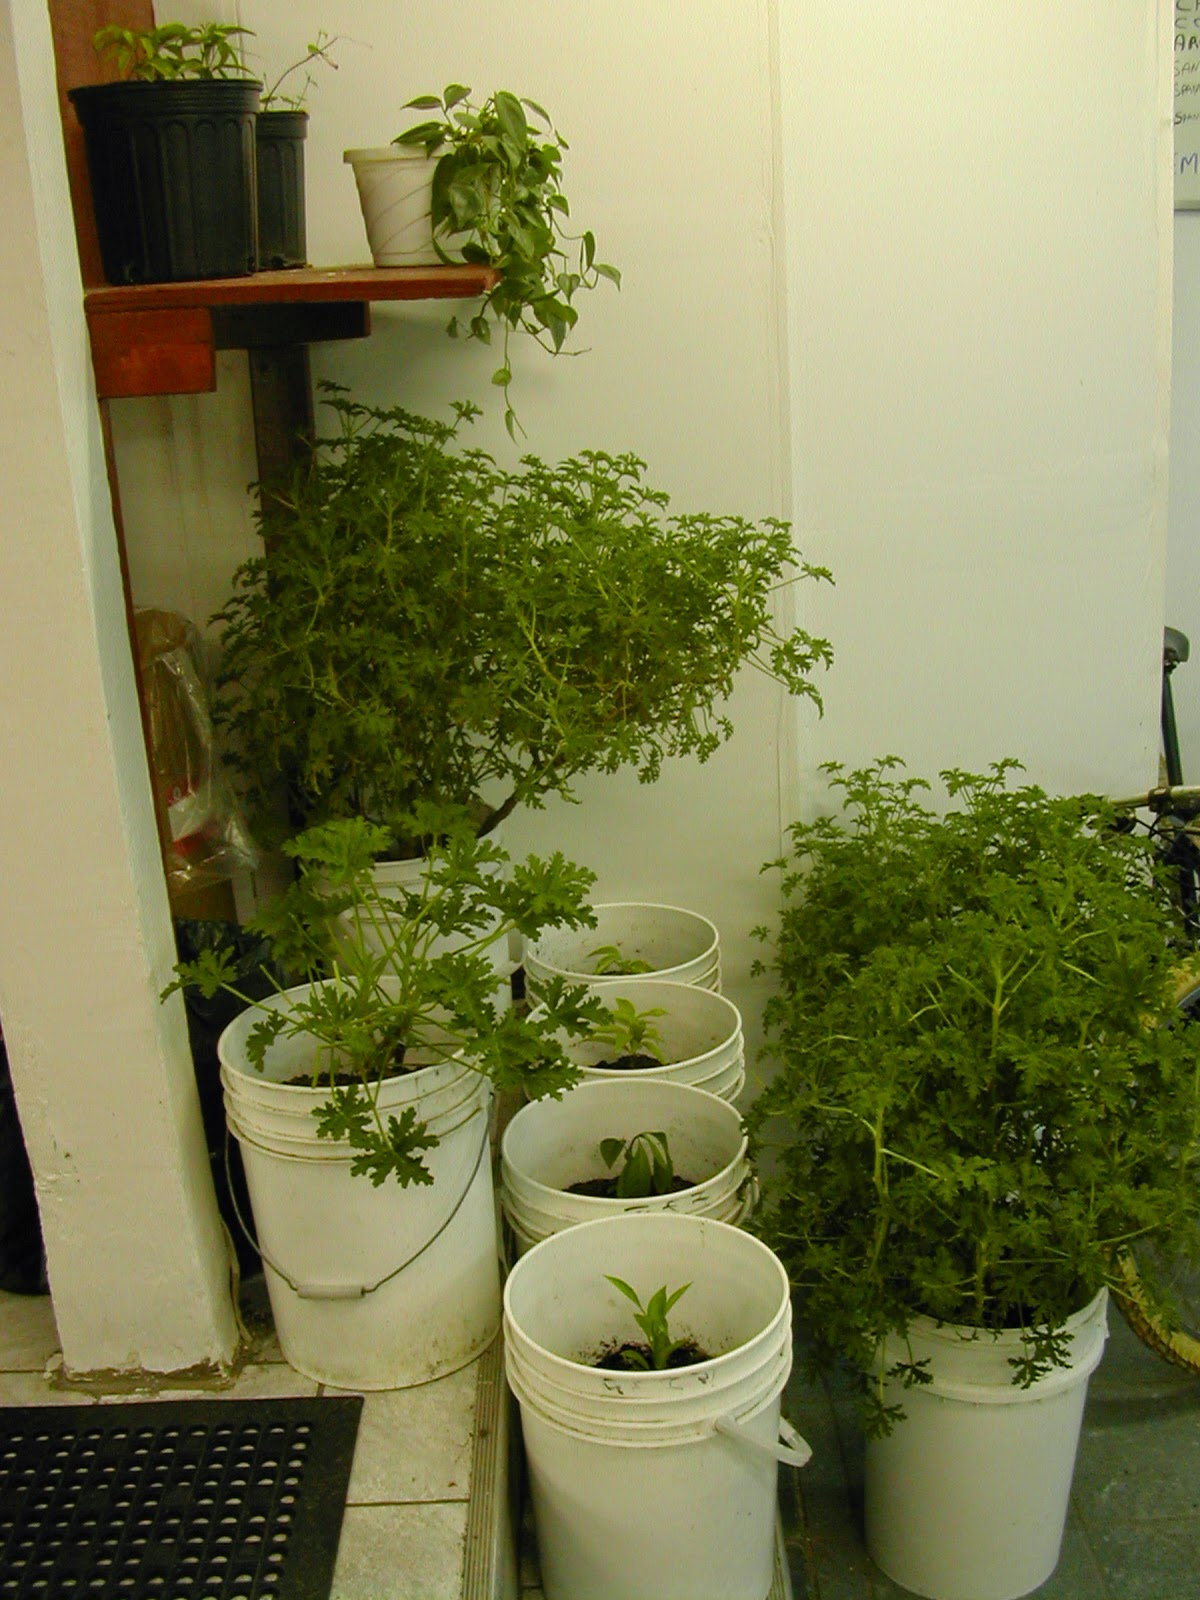 Go hydroponics easy guidelines to build sealed grow for Indoor gardening made easy